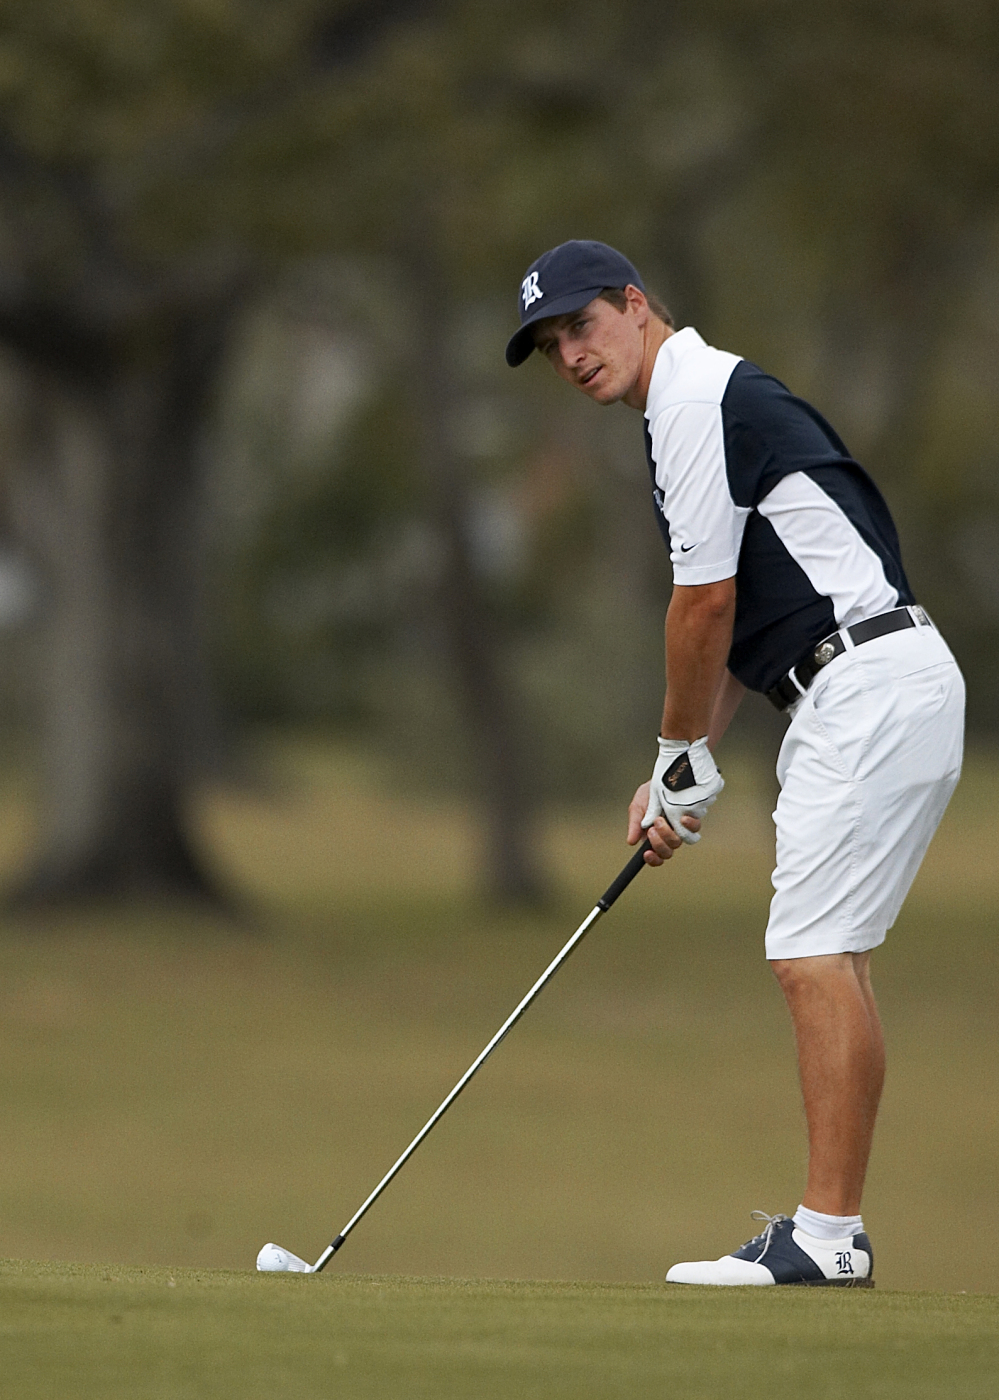 Christopher Brown was named the C-USA Male Golfer of the Week.